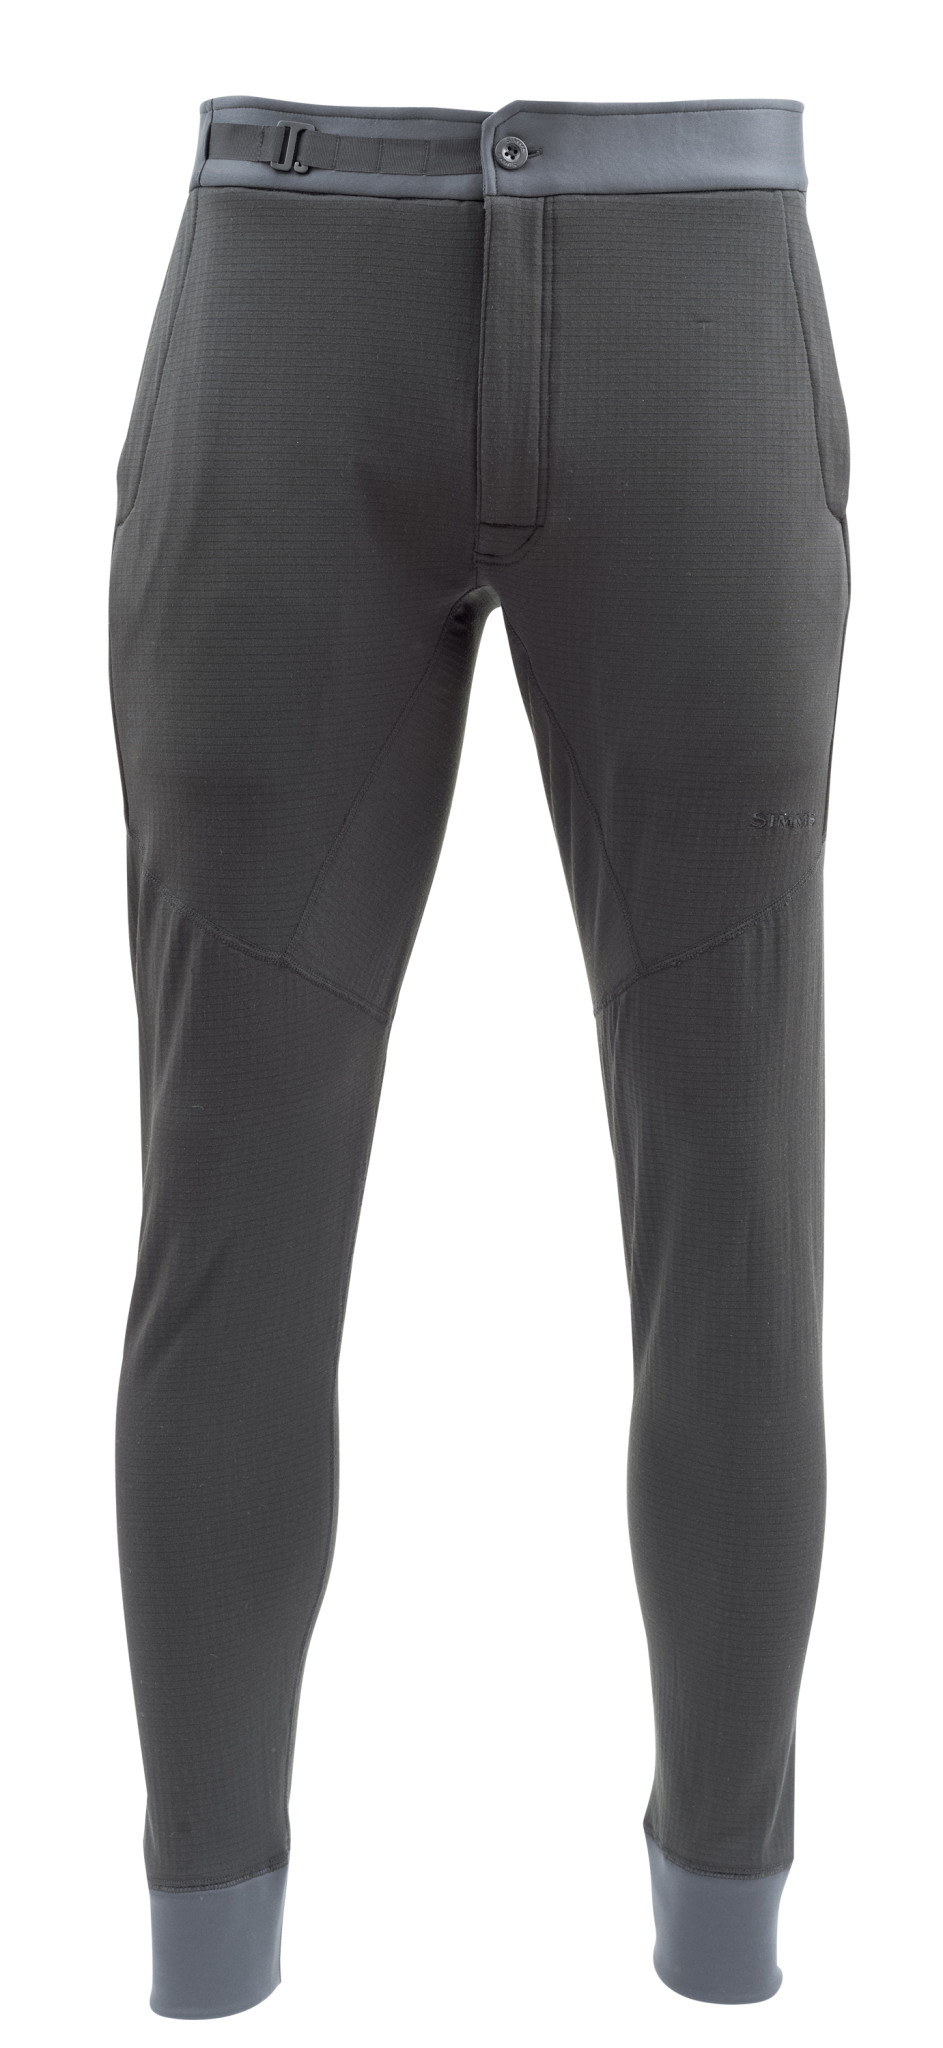 Simms Fleece Midlayer Bottom